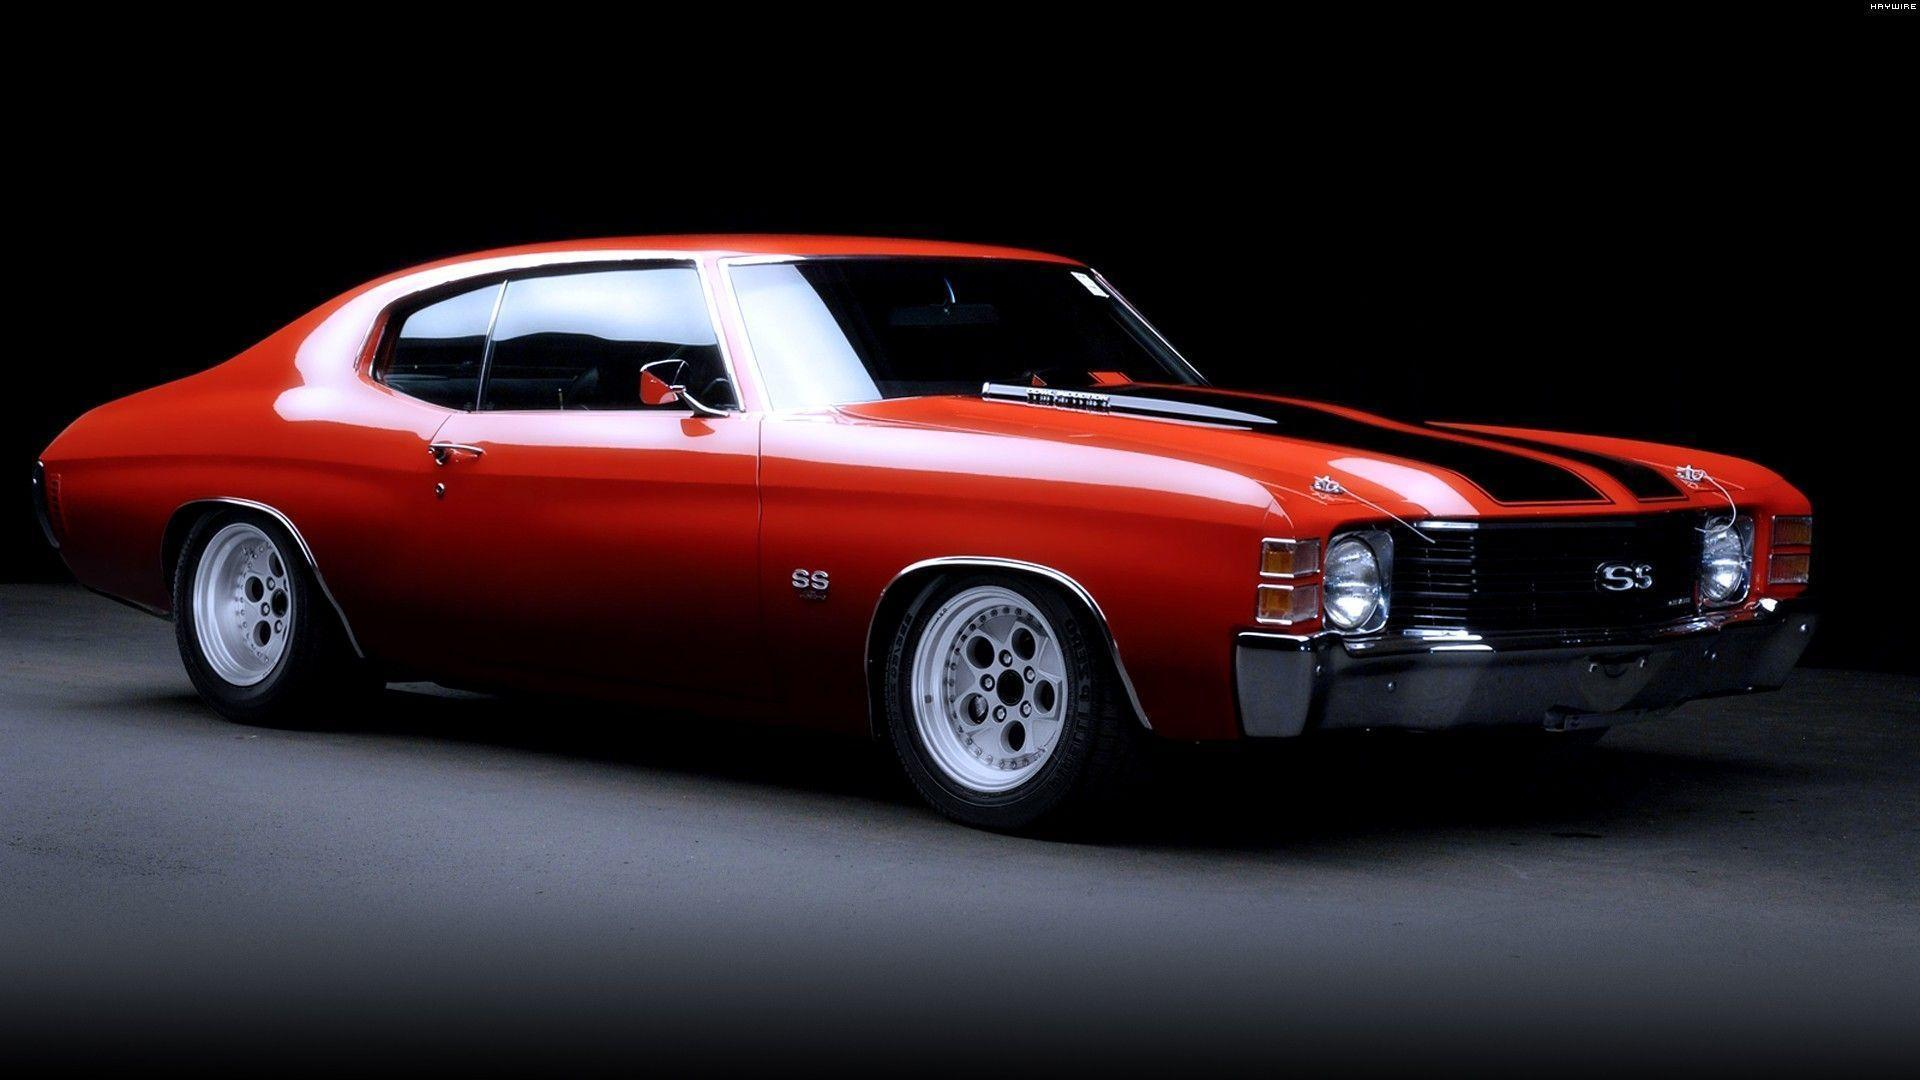 Muscle Car Wallpaper 1080p #11744 | Hdwidescreens.